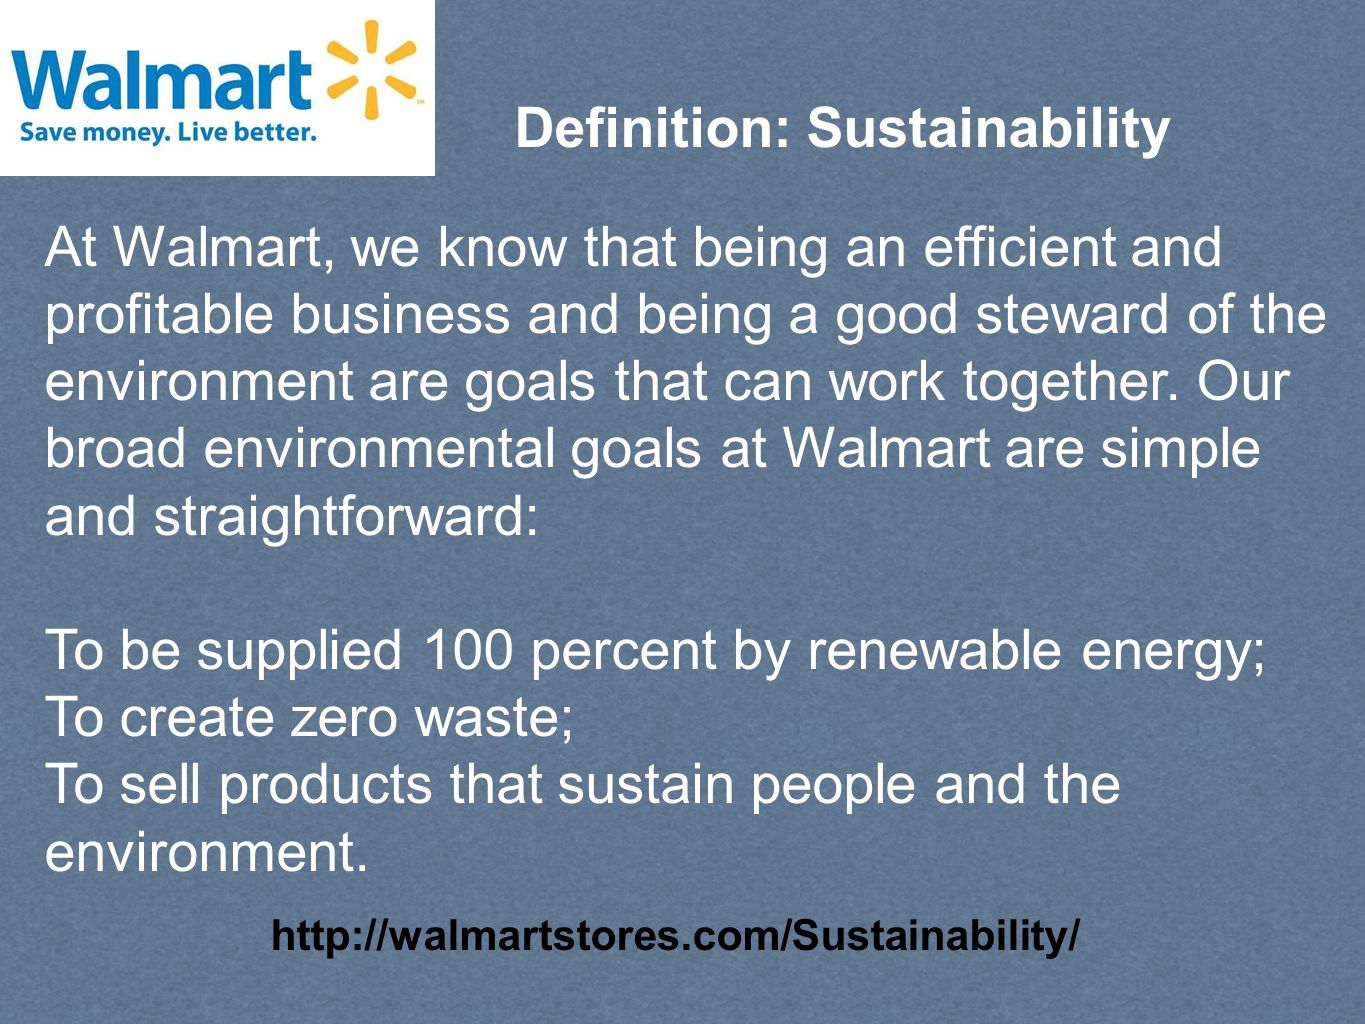 At Walmart, we know that being an efficient and profitable business and being a good steward of the environment are goals that can work together.